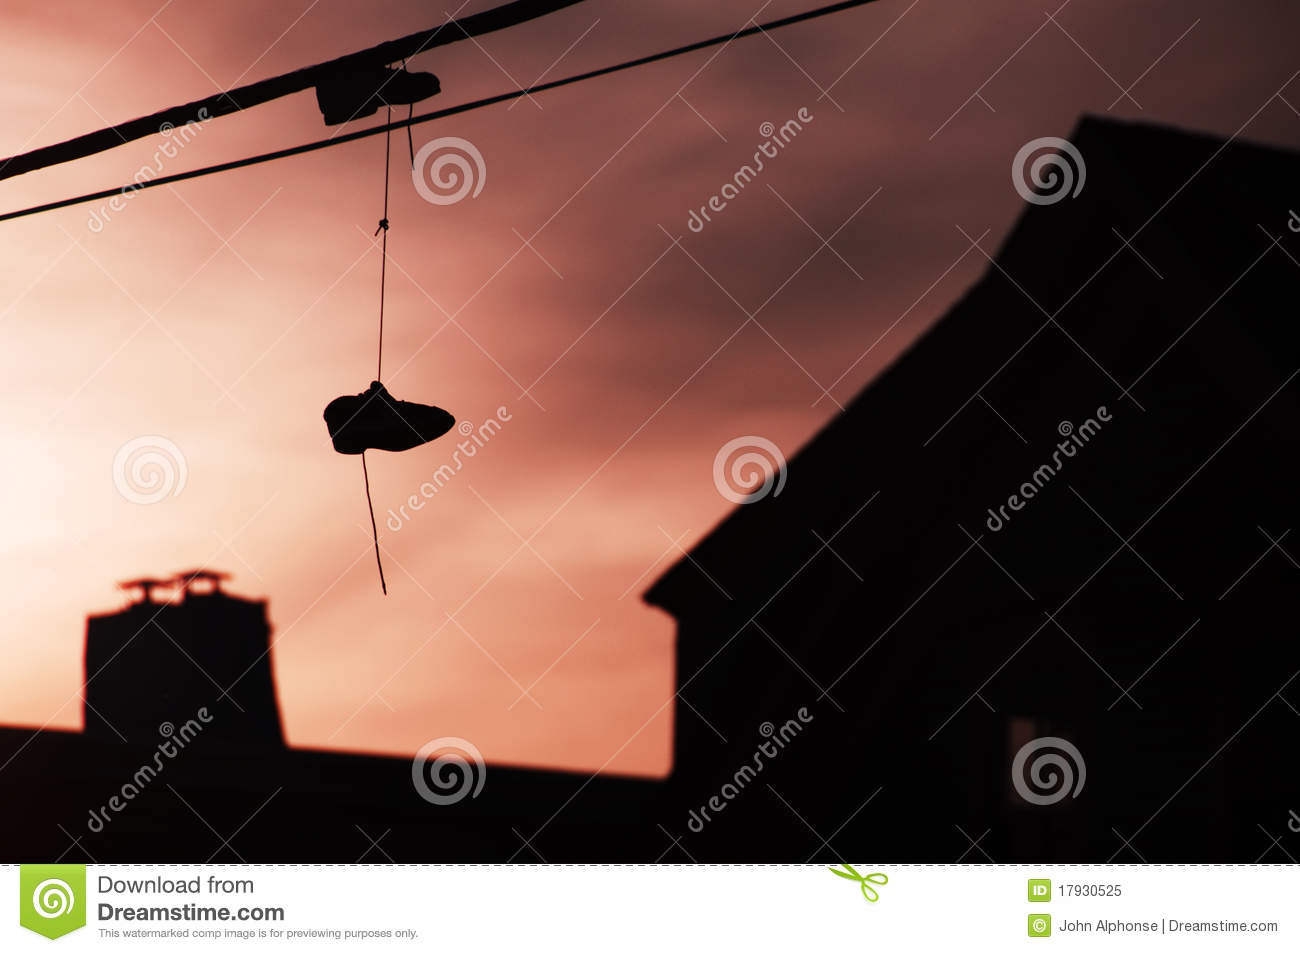 Sneakers hanging from wire royalty free stock photo for Hang photos from wire